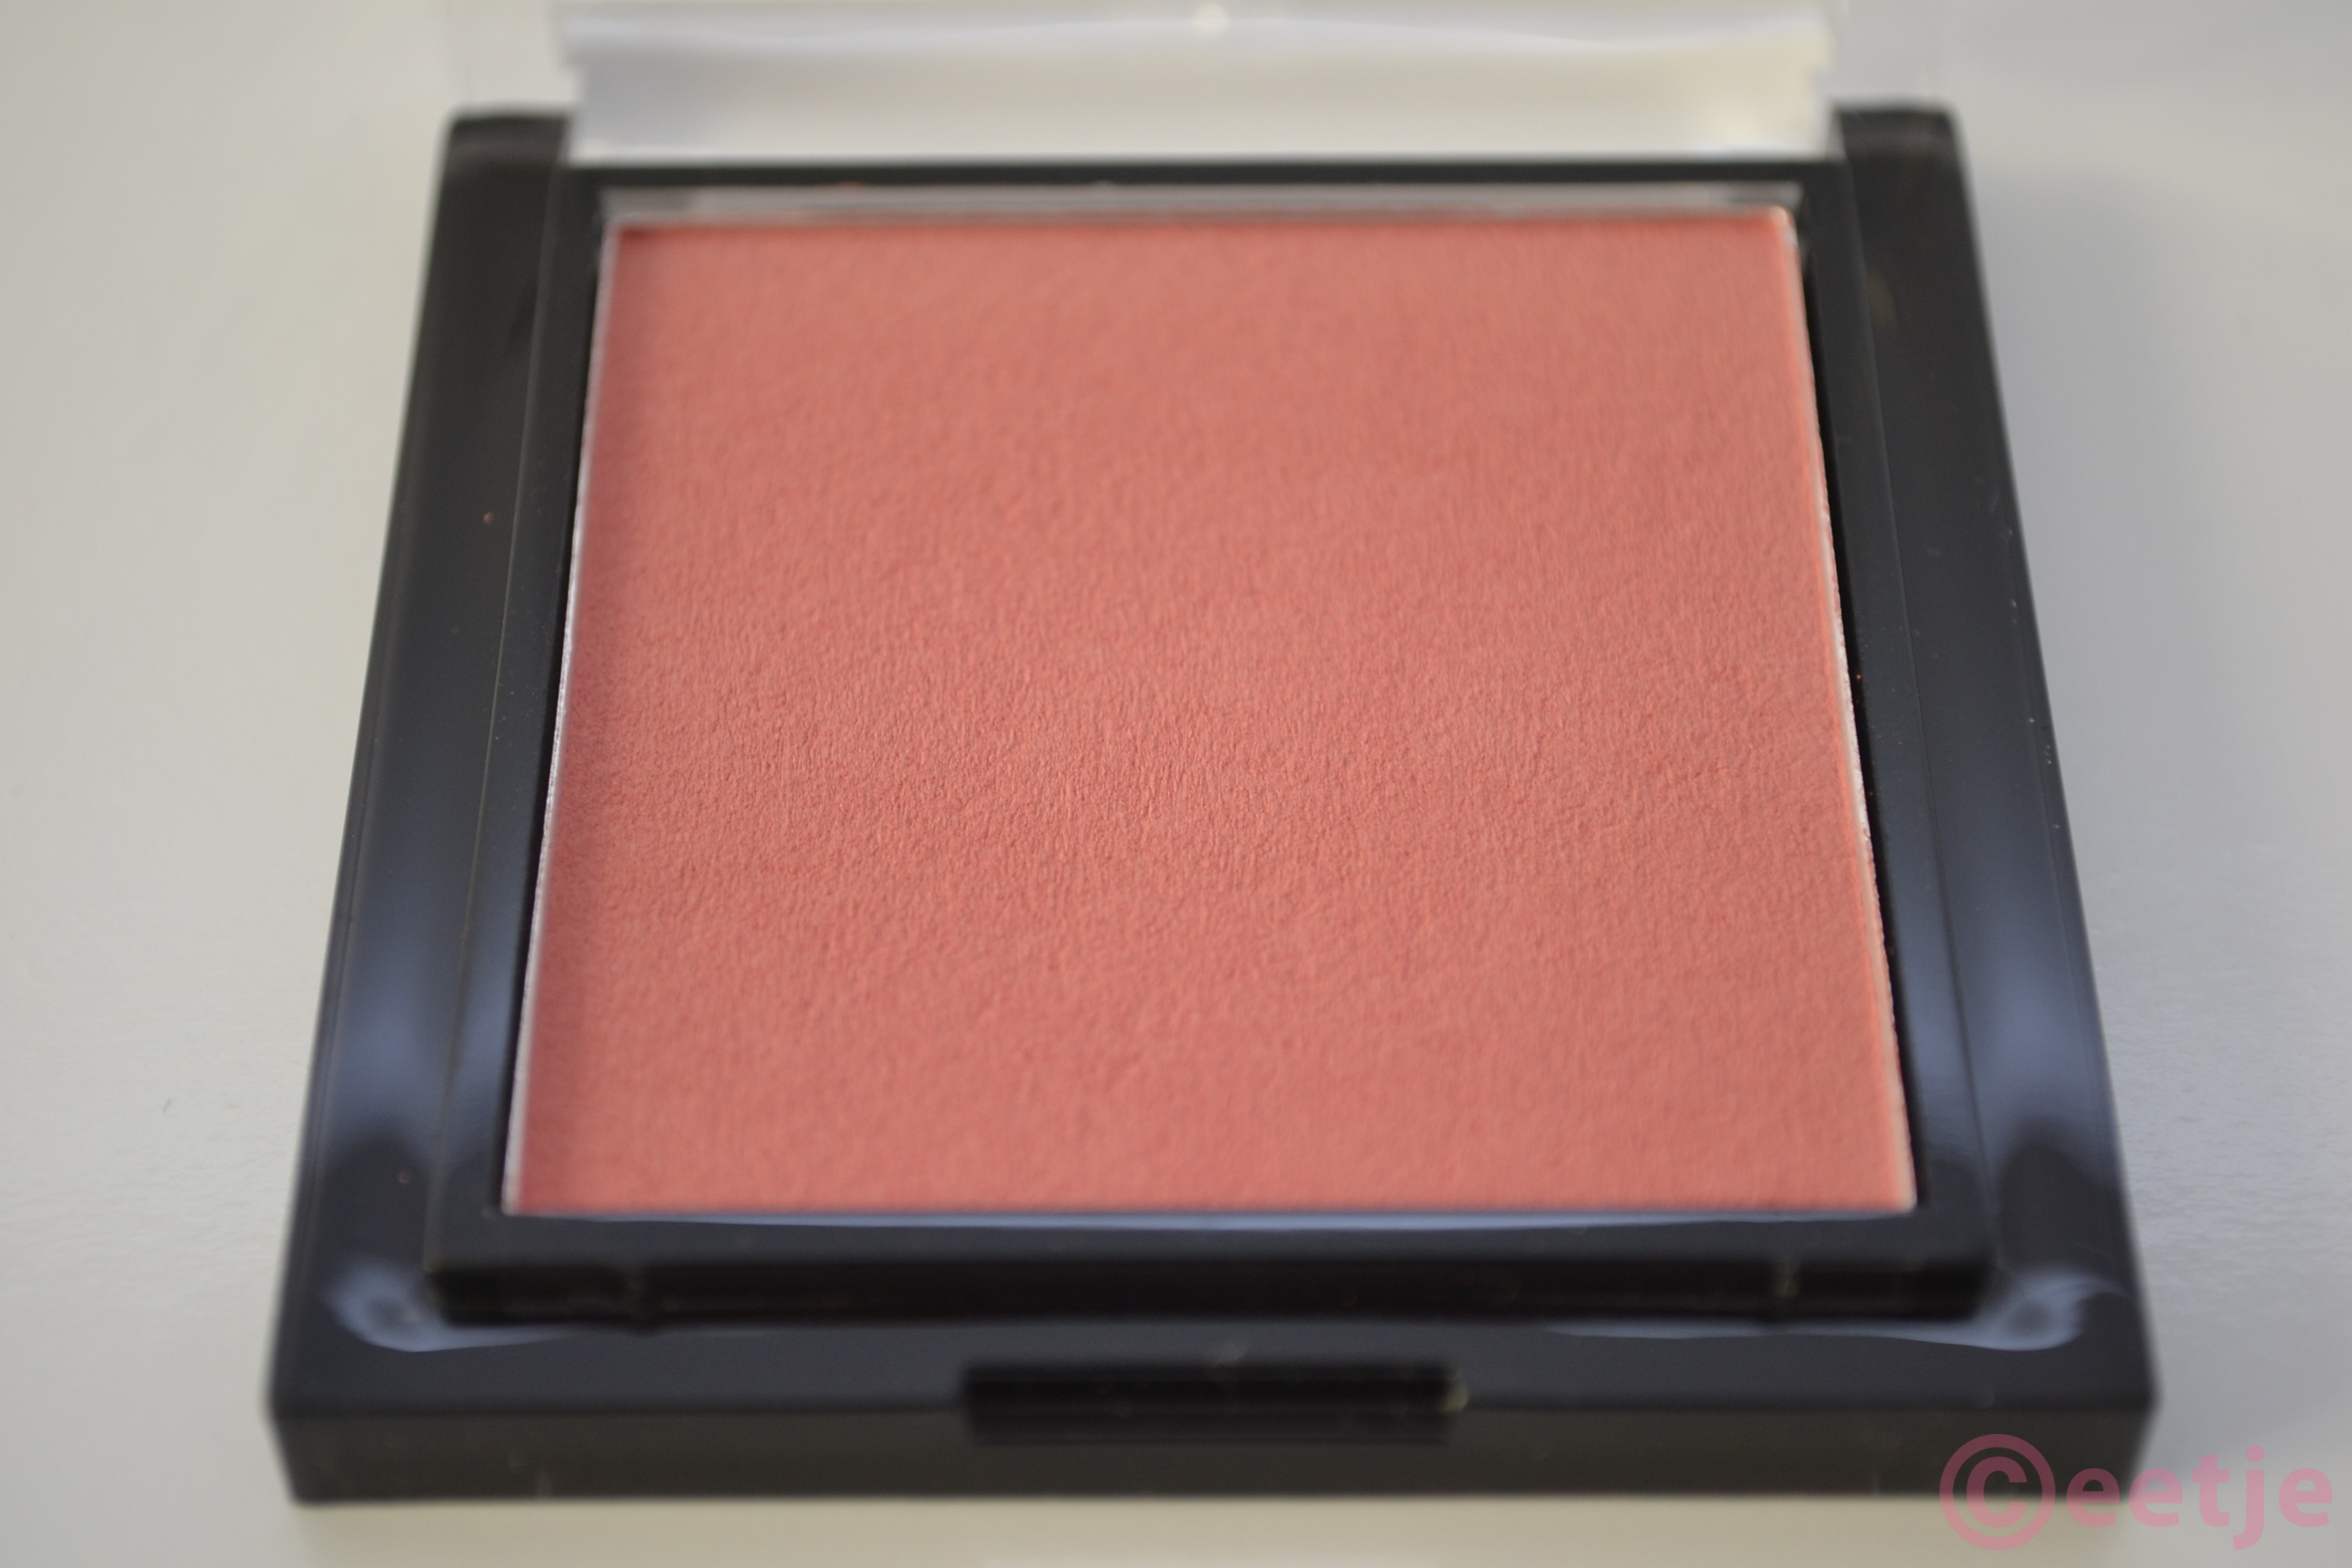 H&M blush Coral Sugar